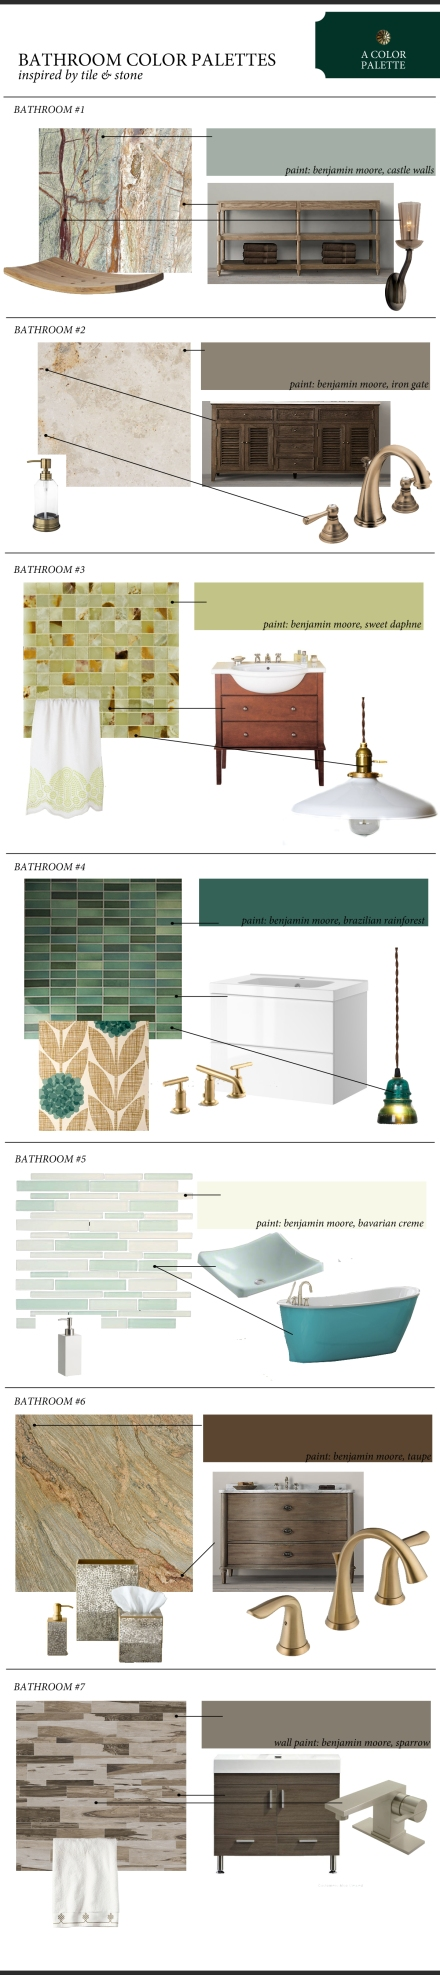 let-tile-inspire-the-color-palette copy